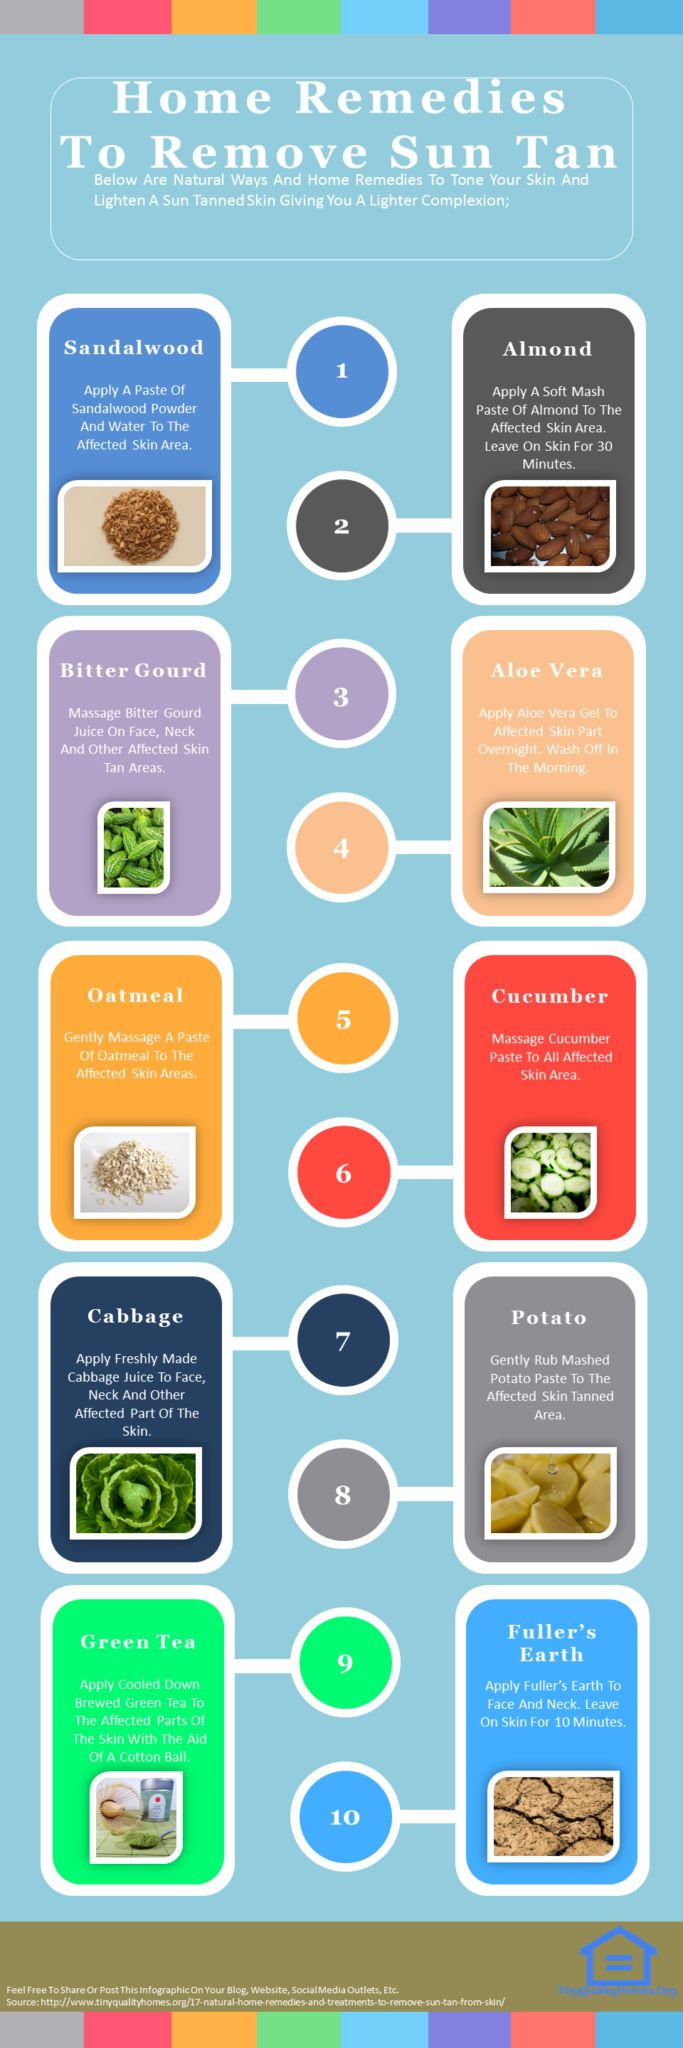 17 Natural Home Remedies And Treatments To Remove Sun Tan From Skin: This Guide Shows The Following; How To Remove Sun Tan From Hands, How To Remove Sun Tan Quickly, How To Remove Tanning From Face In 2 Days, How To Remove SunTan From Face In A Day, How To Remove Sun Tan Instantly, How To Remove Tan In One Day Naturally, Sun Tan Removal Cream, Homemade Tan Removal Pack and Lotion, Etc.